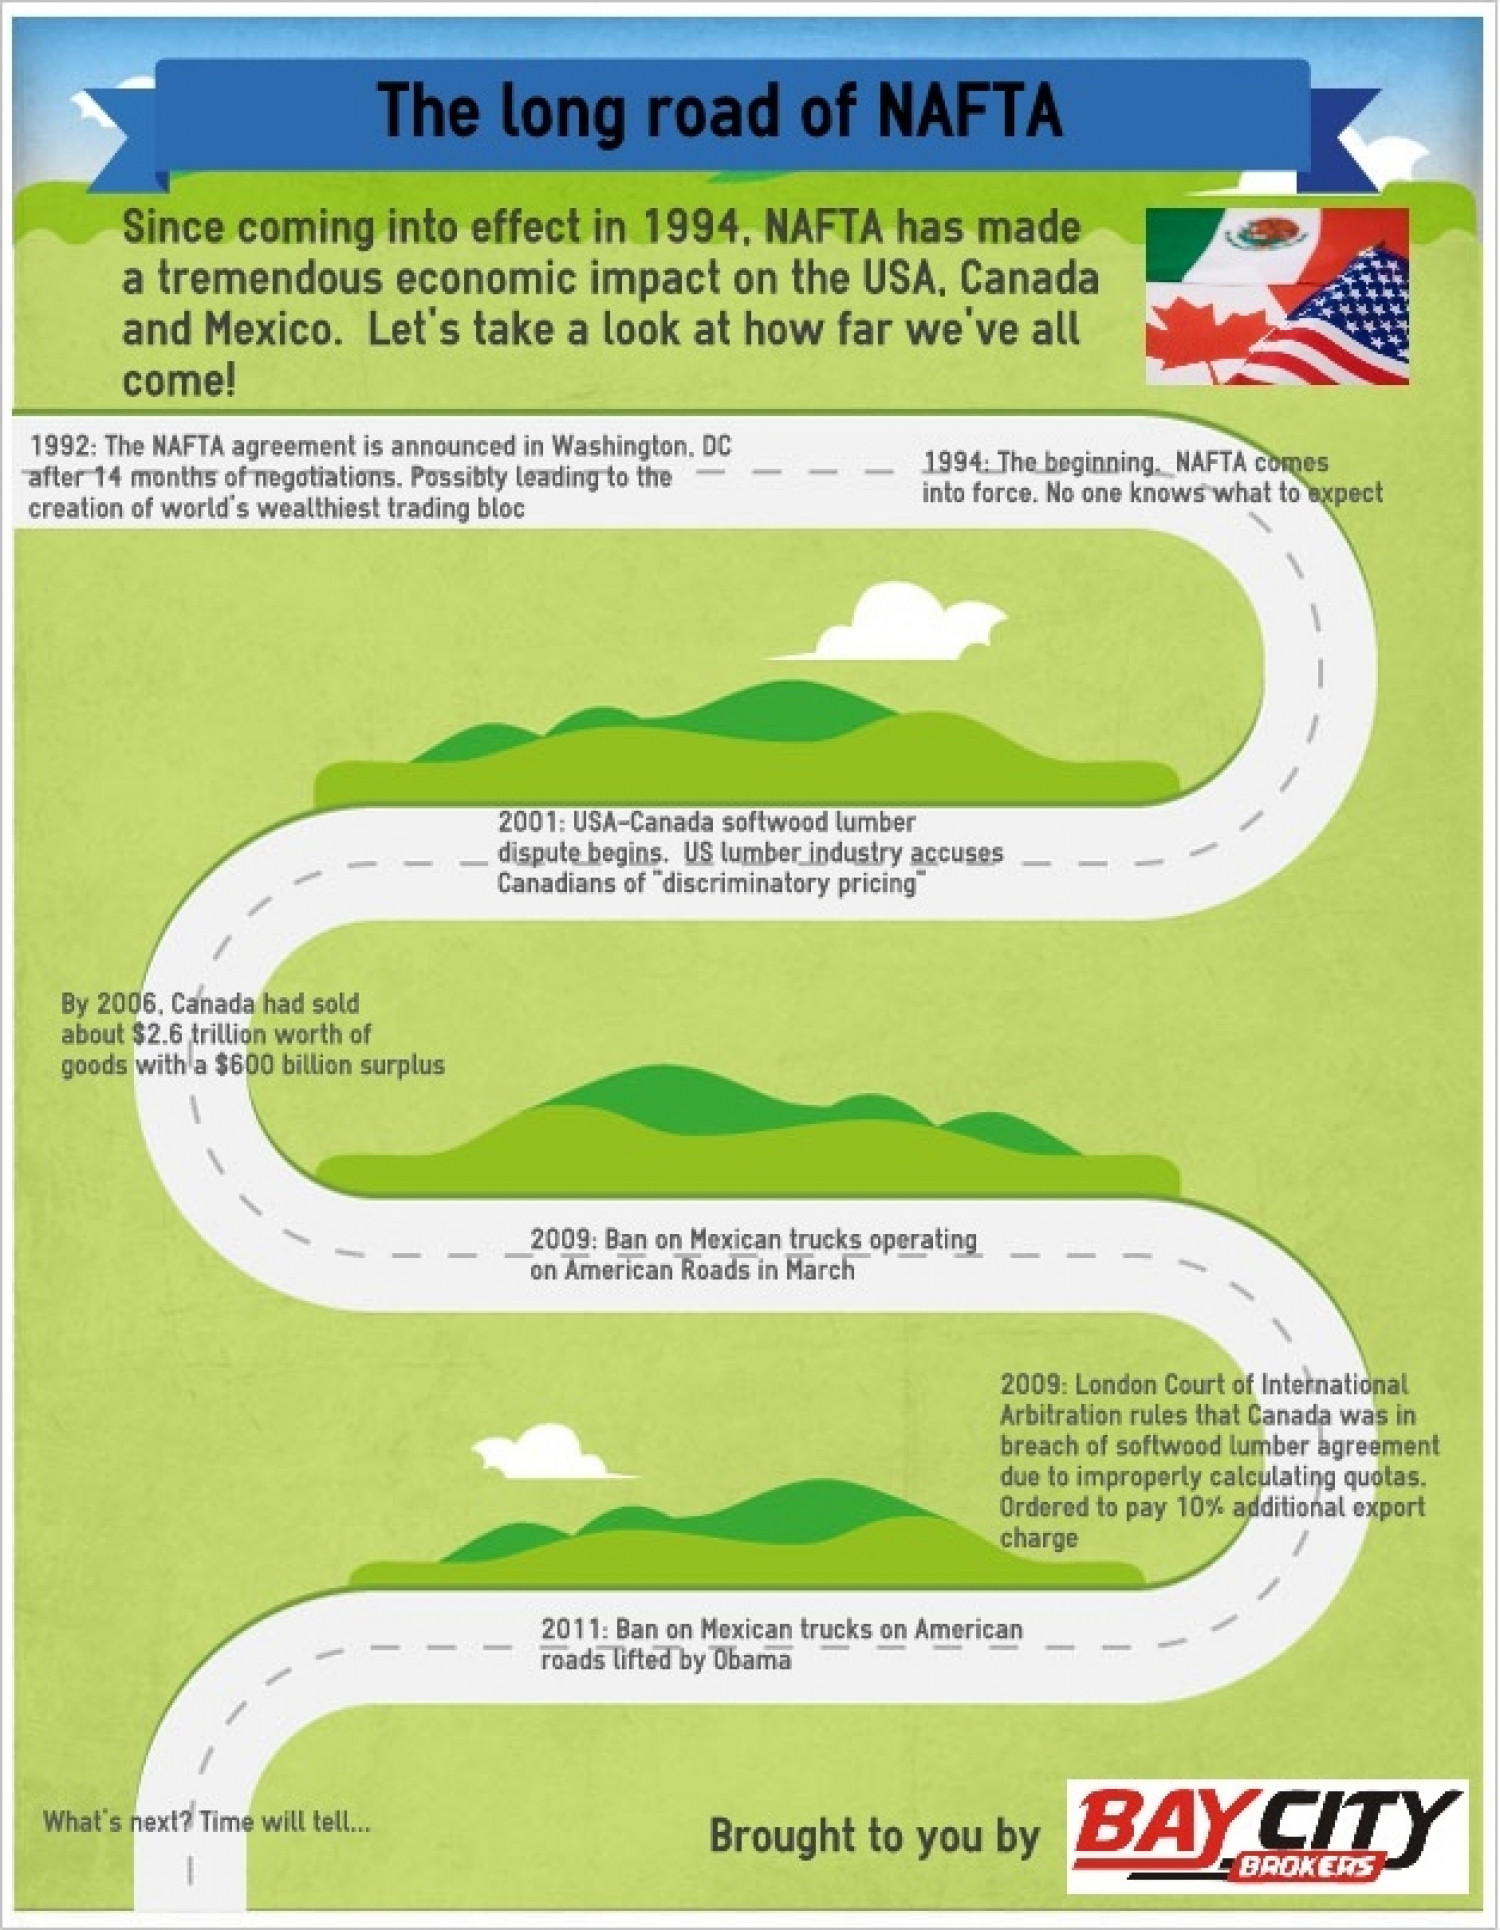 The Long Road of NAFTA Infographic